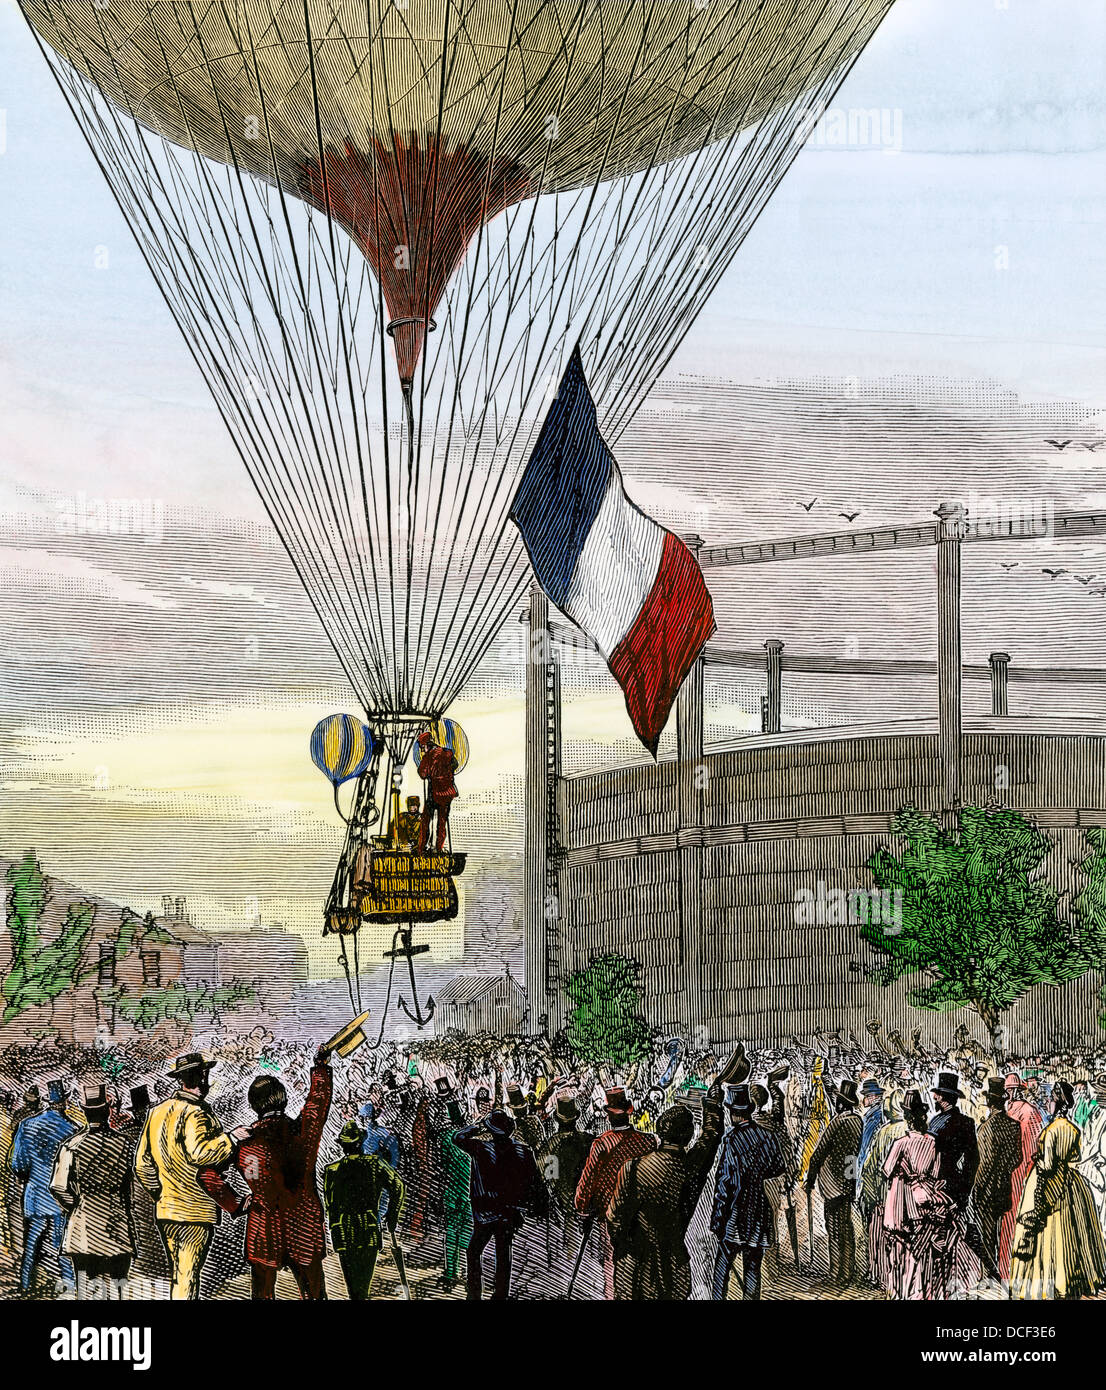 Balloon ascent of Jovis and Mallet from La Villette Gasworks, Paris, 1880s. Hand-colored woodcut - Stock Image